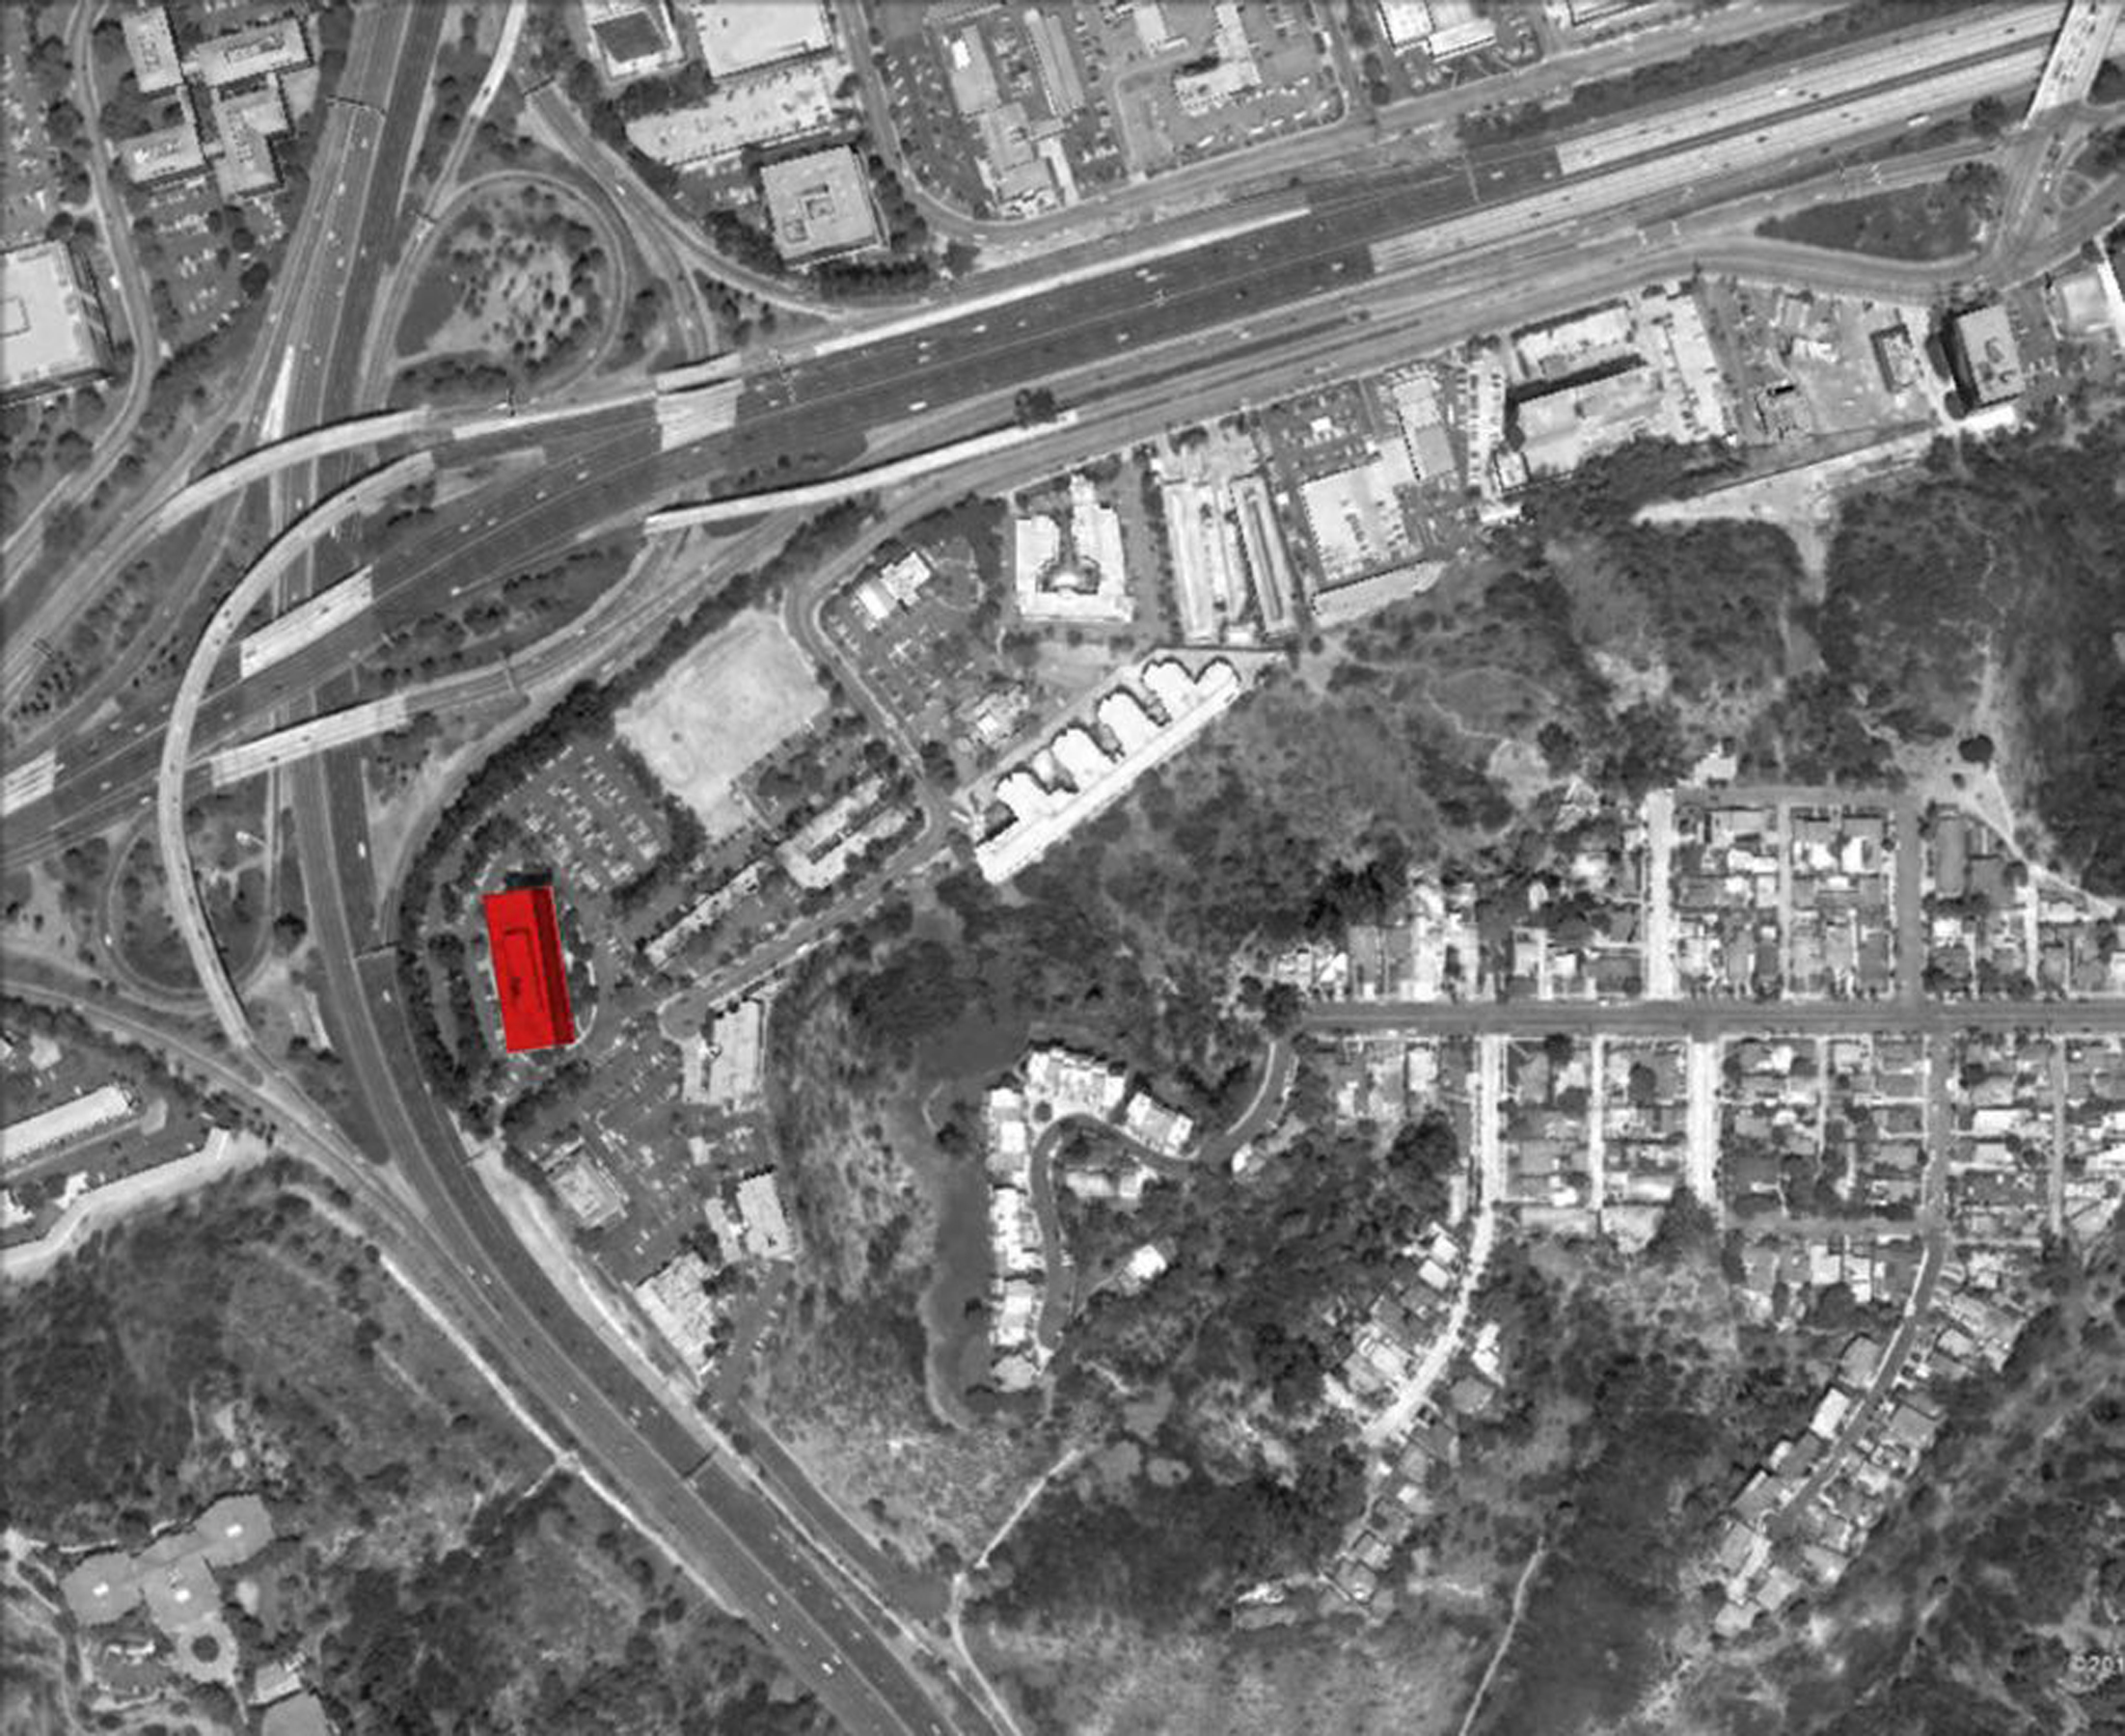 003 open studio archtiecture Brookwood 404 site aerial OSA